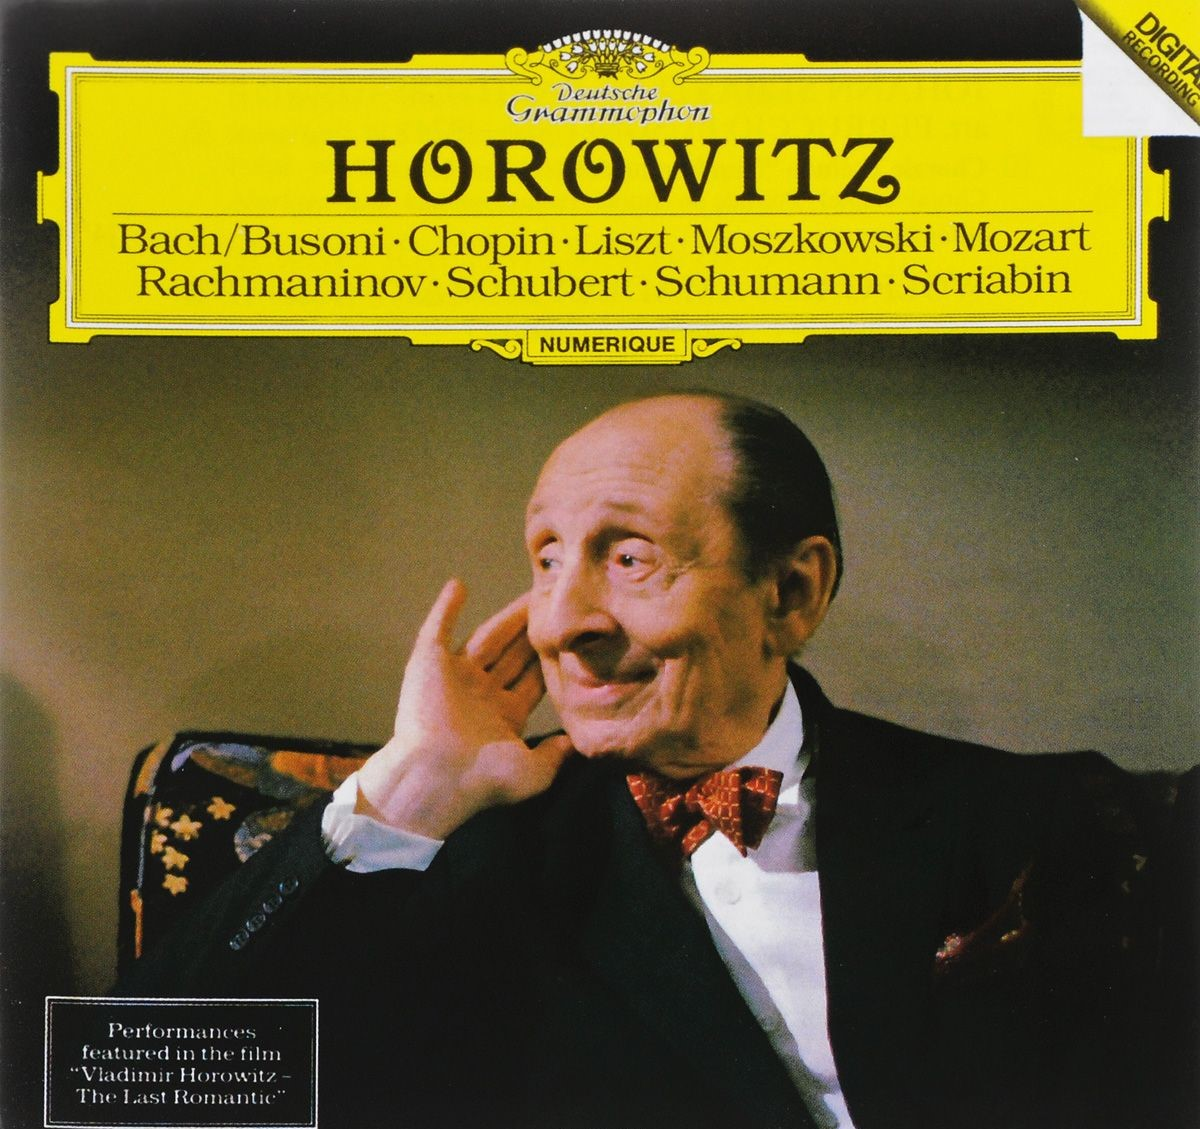 Vladimir Horowitz. The Last Romantic